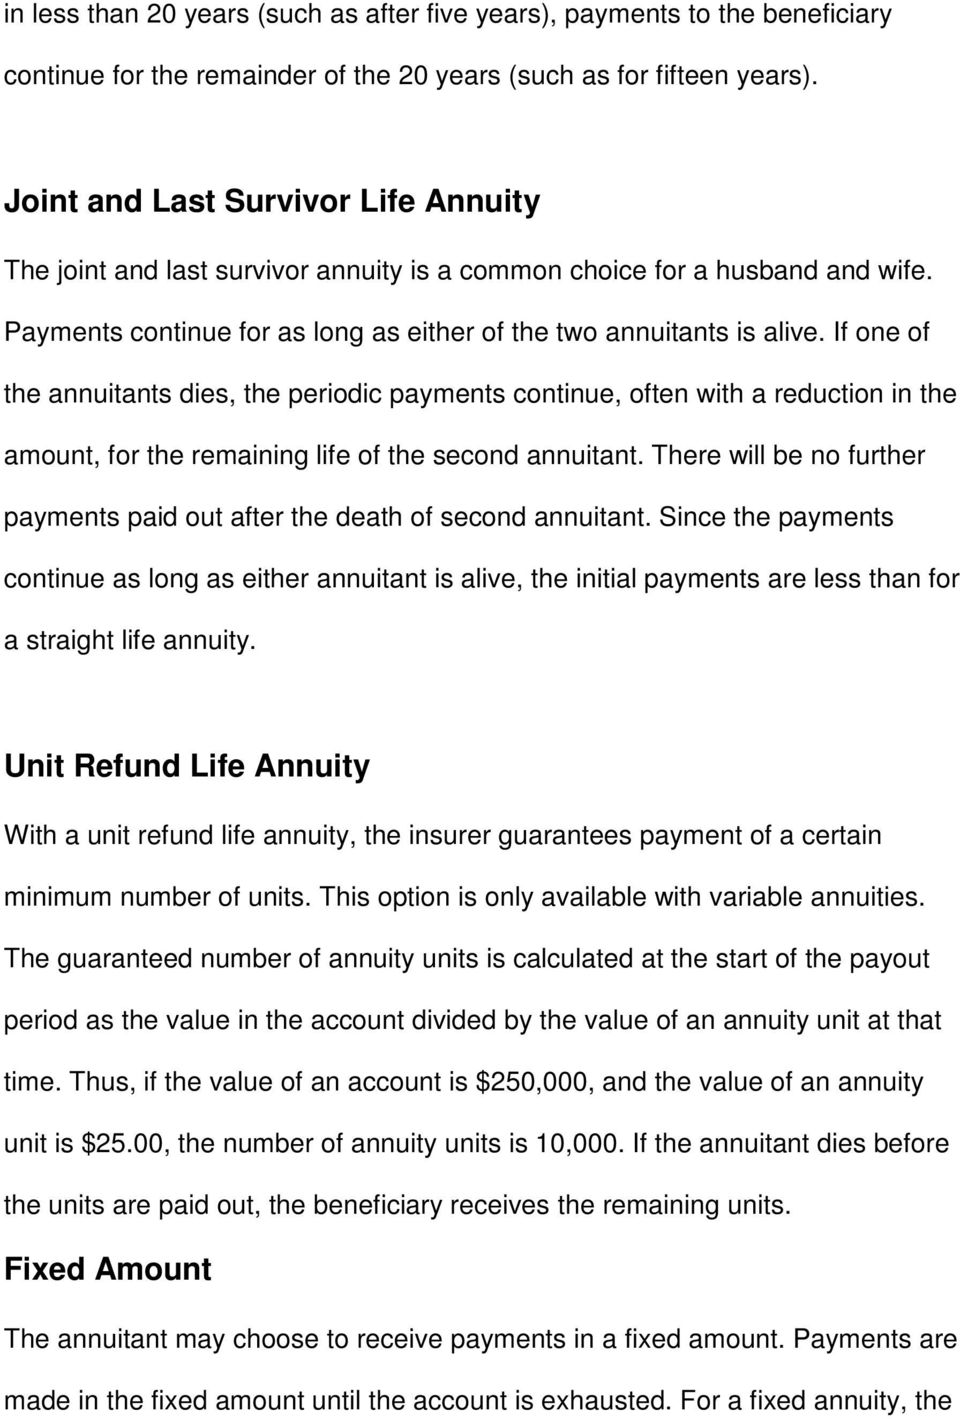 If one of the annuitants dies, the periodic payments continue, often with a reduction in the amount, for the remaining life of the second annuitant.